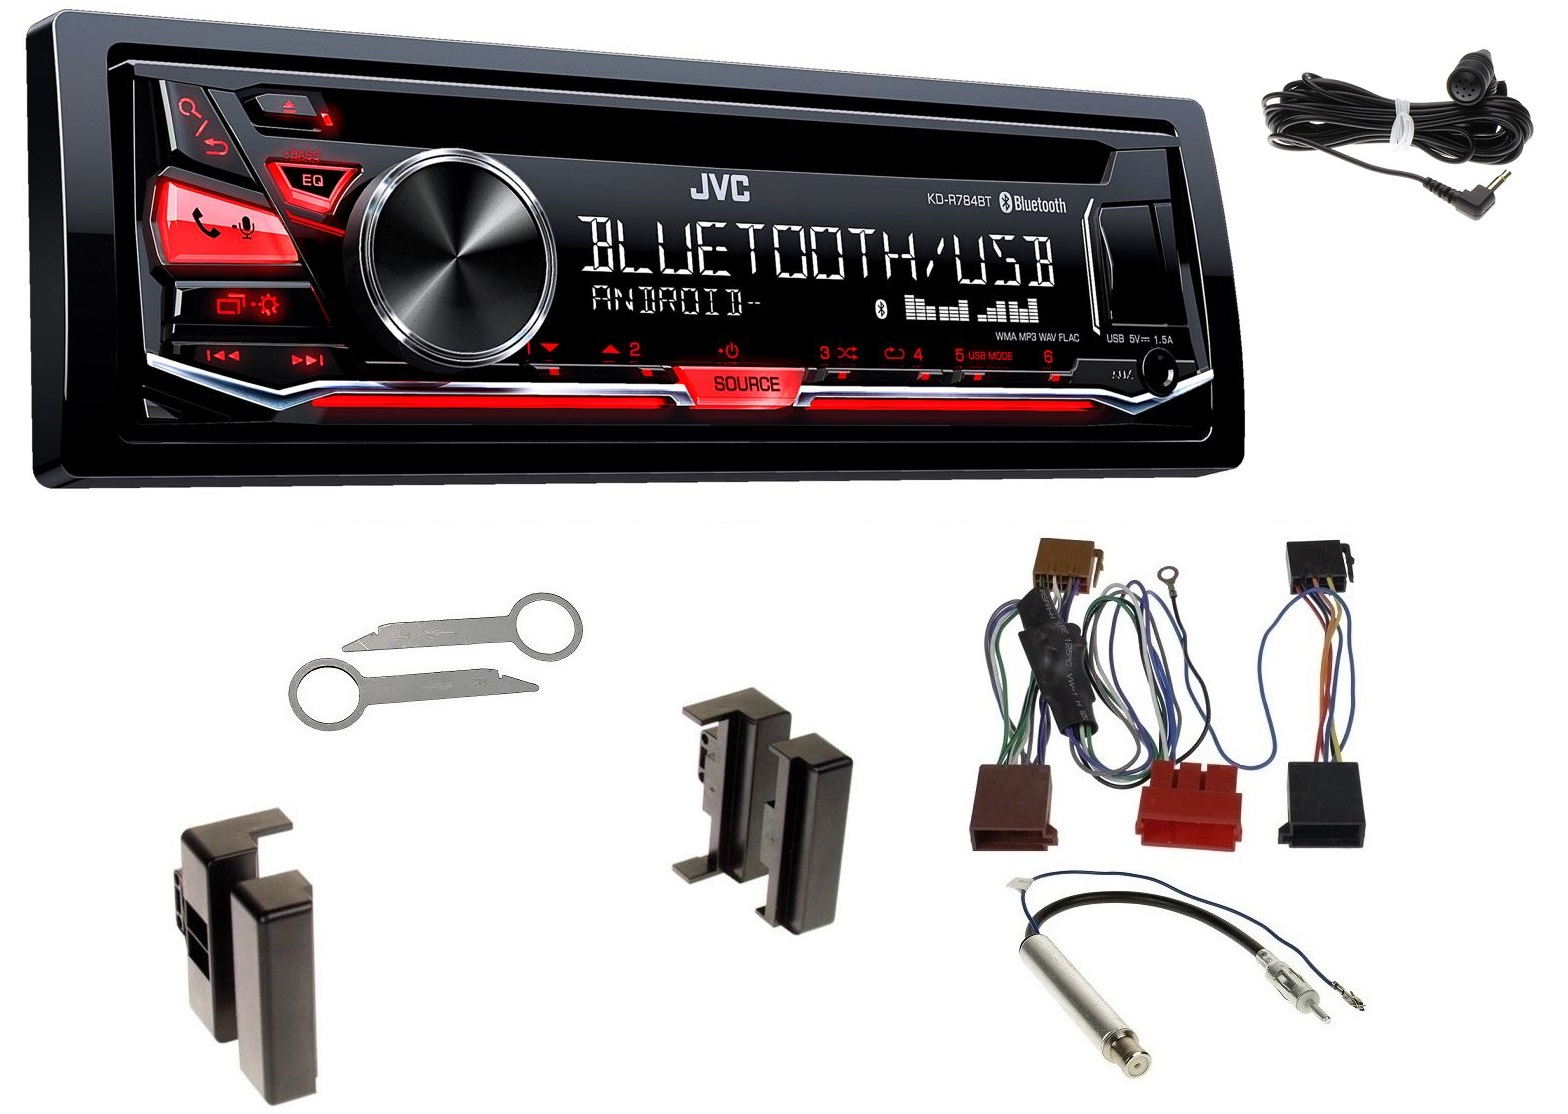 wiring diagram jvc car stereo 04 gsxr 600 kd hdr60 harness